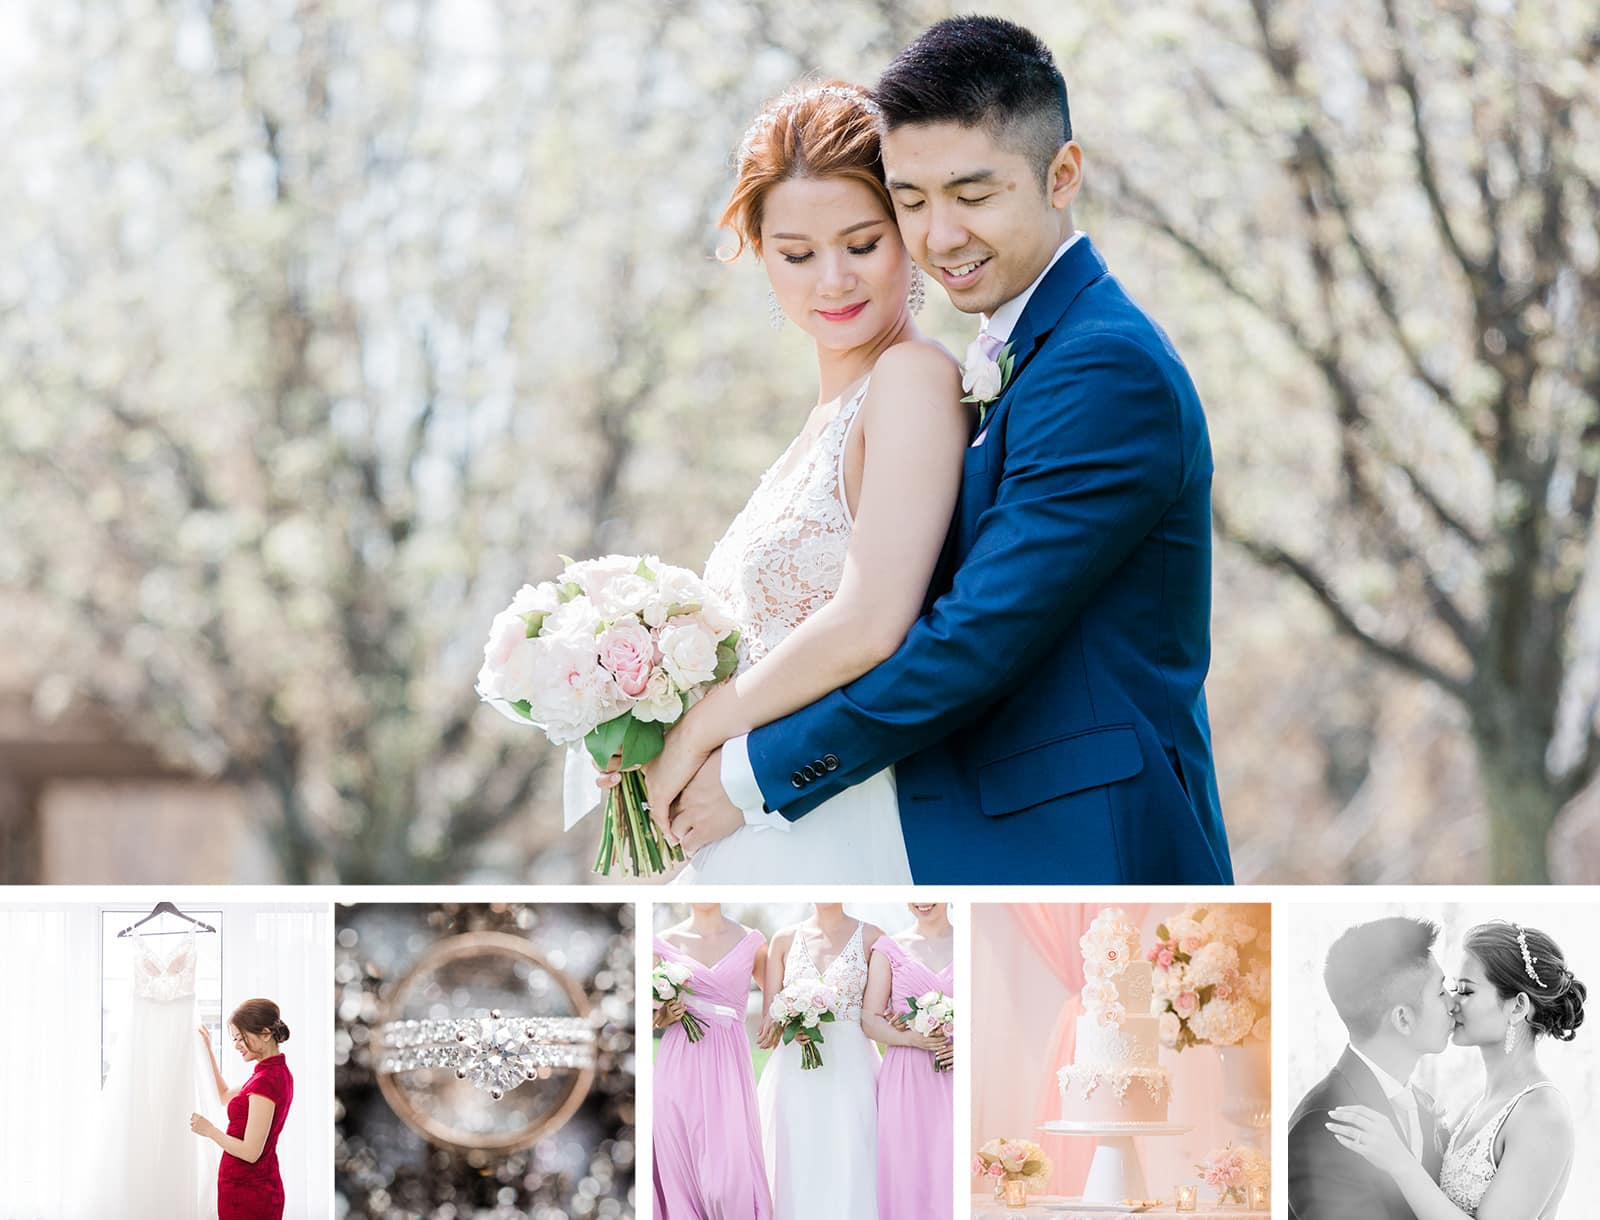 A Pretty Spring Wedding at Paradise Banquet Hall: Leah + Philip